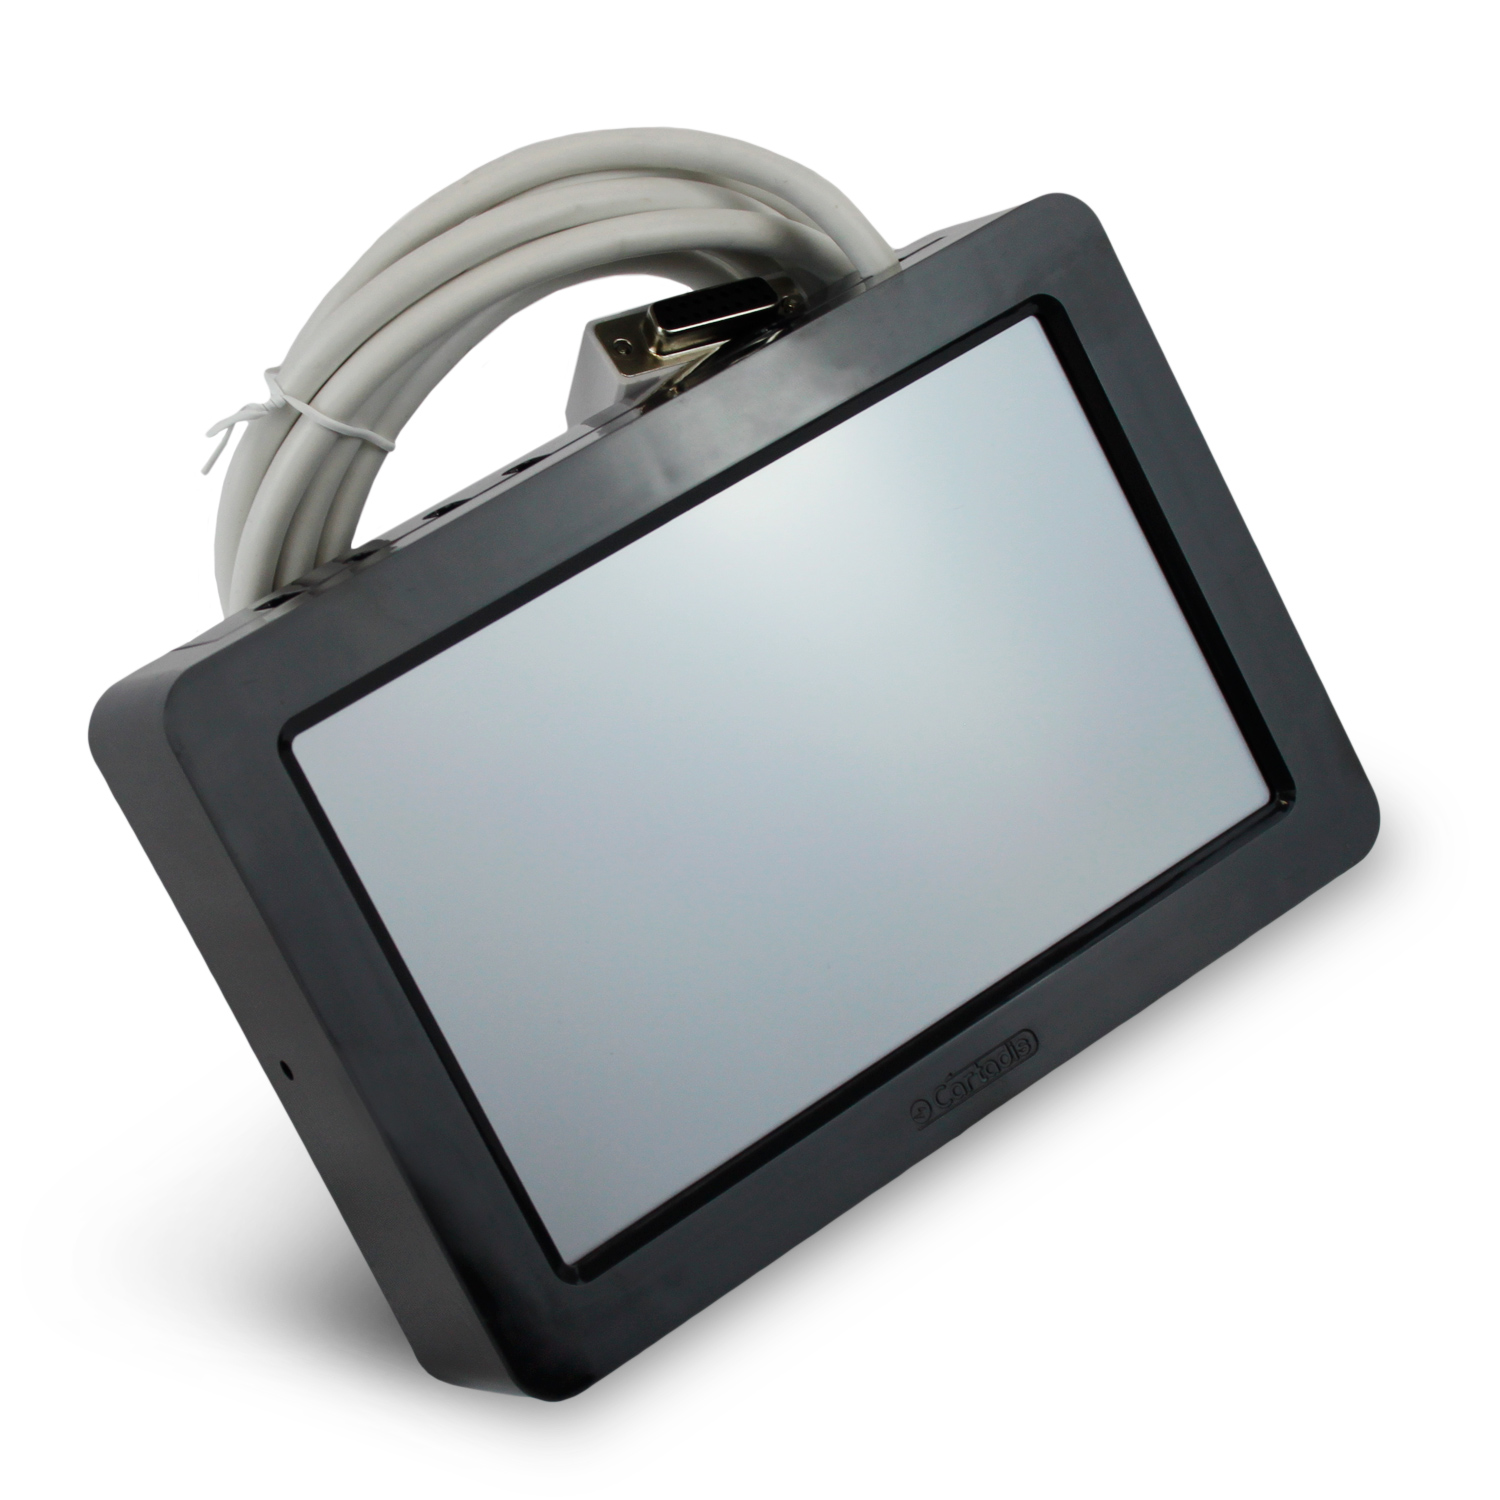 Touch screen terminal for printers and MFPs